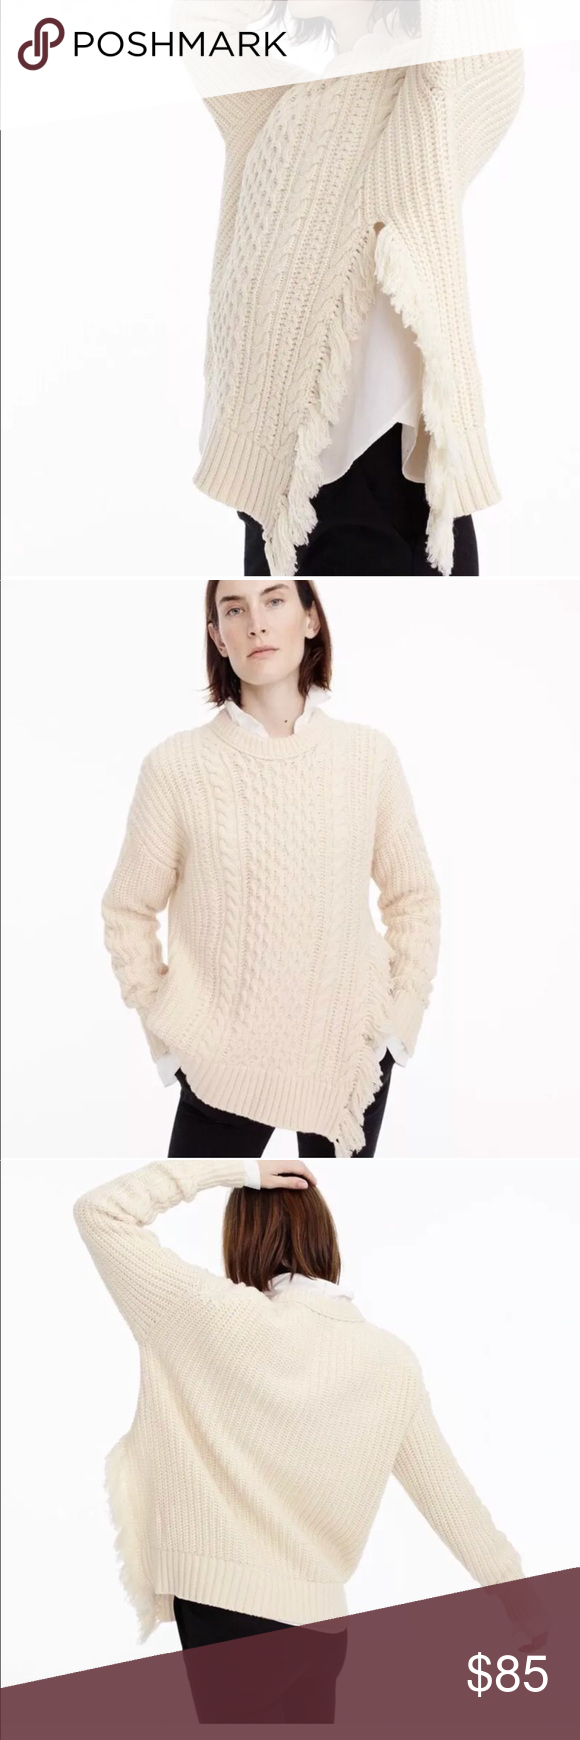 9117fc4c9e3647 J crew cable knit sweater with fringe detail DETAILS & CARE The classic cable-knit  sweater with a twist (that fringe side detail) features a lofty, ...